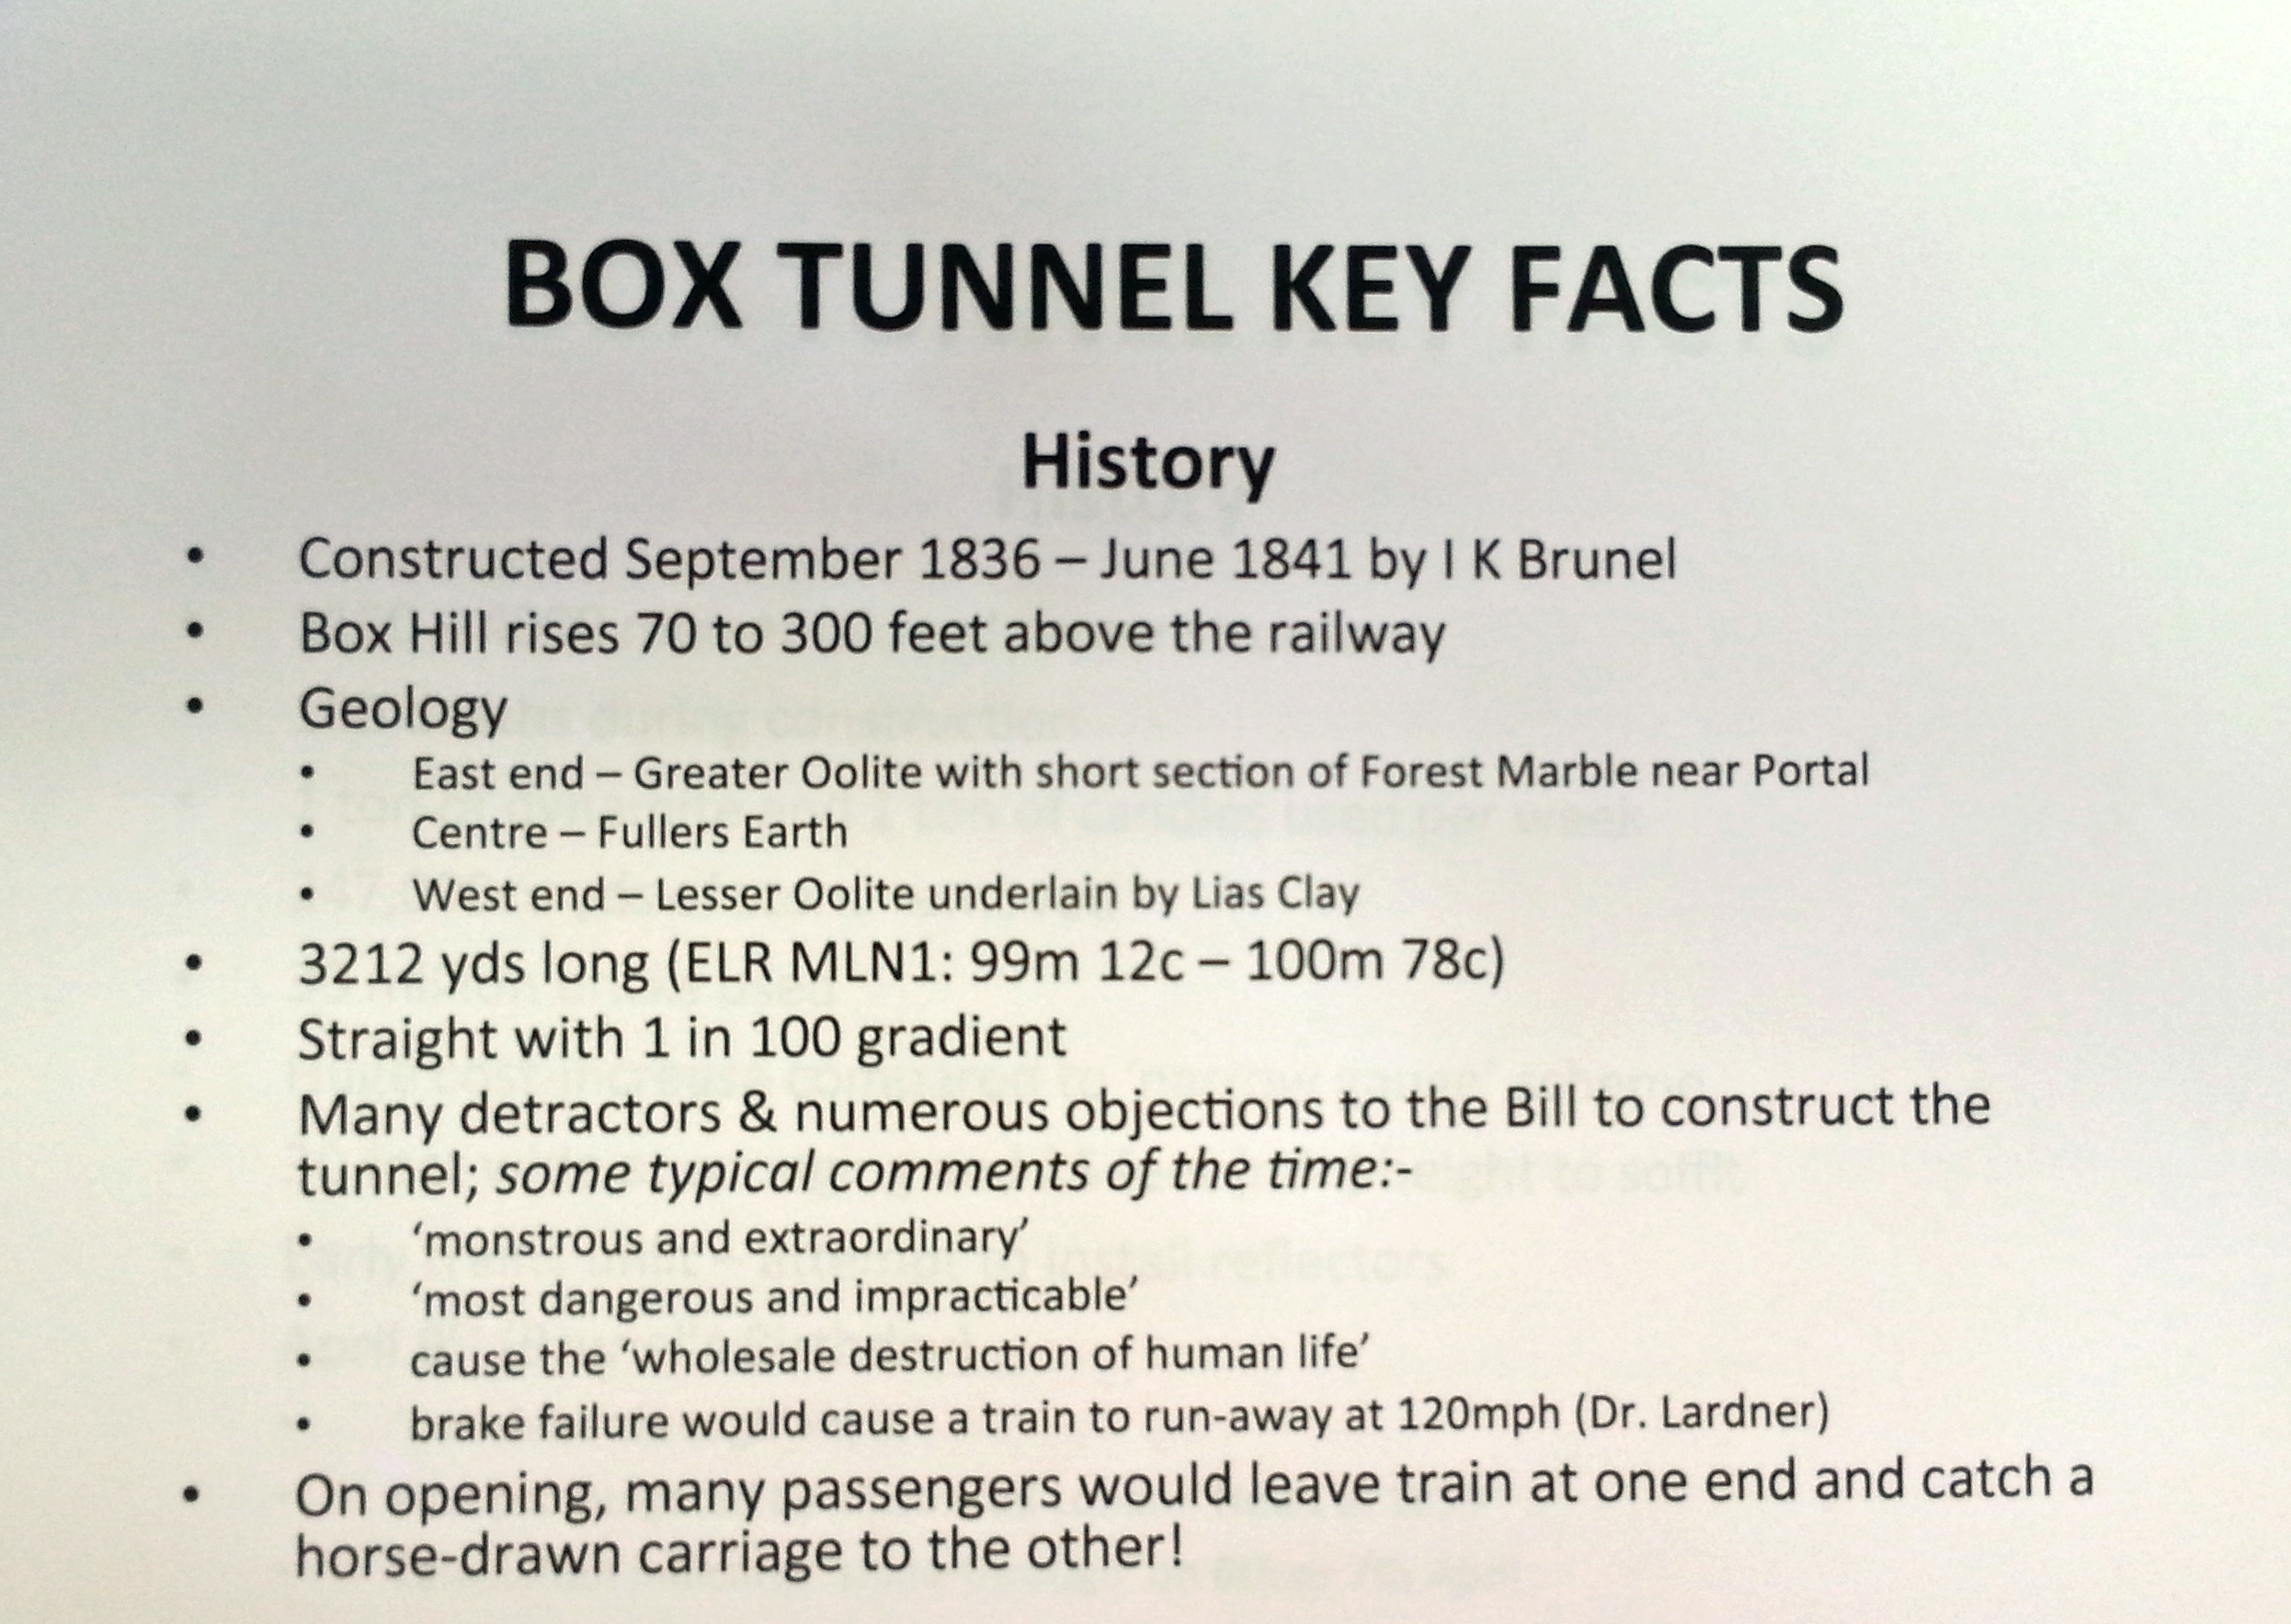 Box tunnel facts